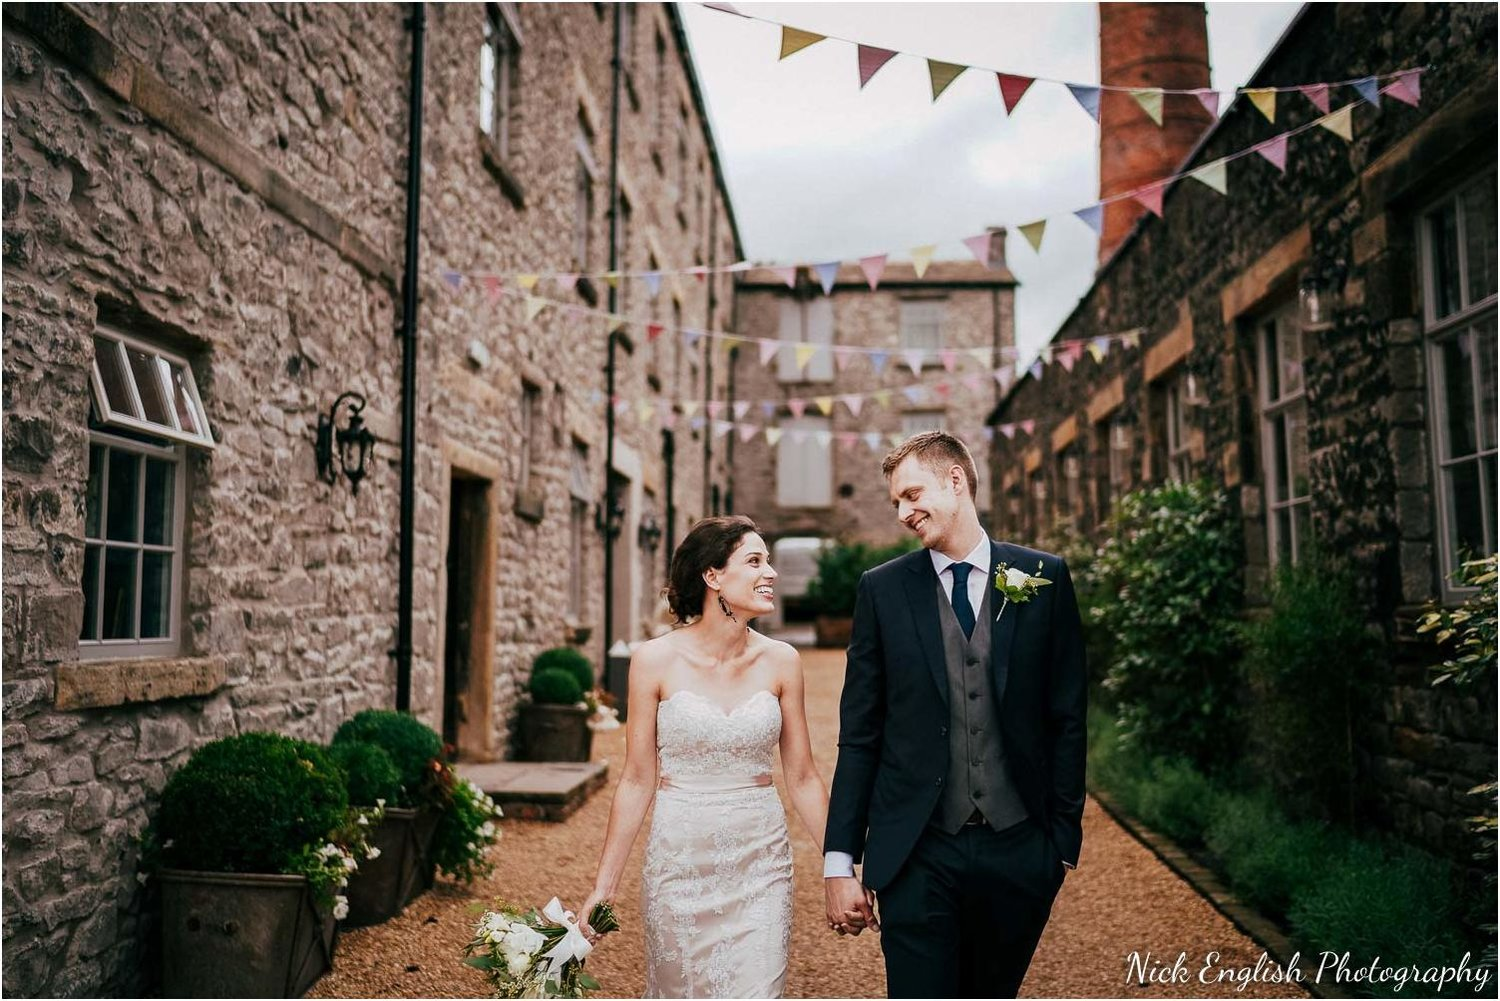 Nick English Photography UK Destination Wedding Photographer